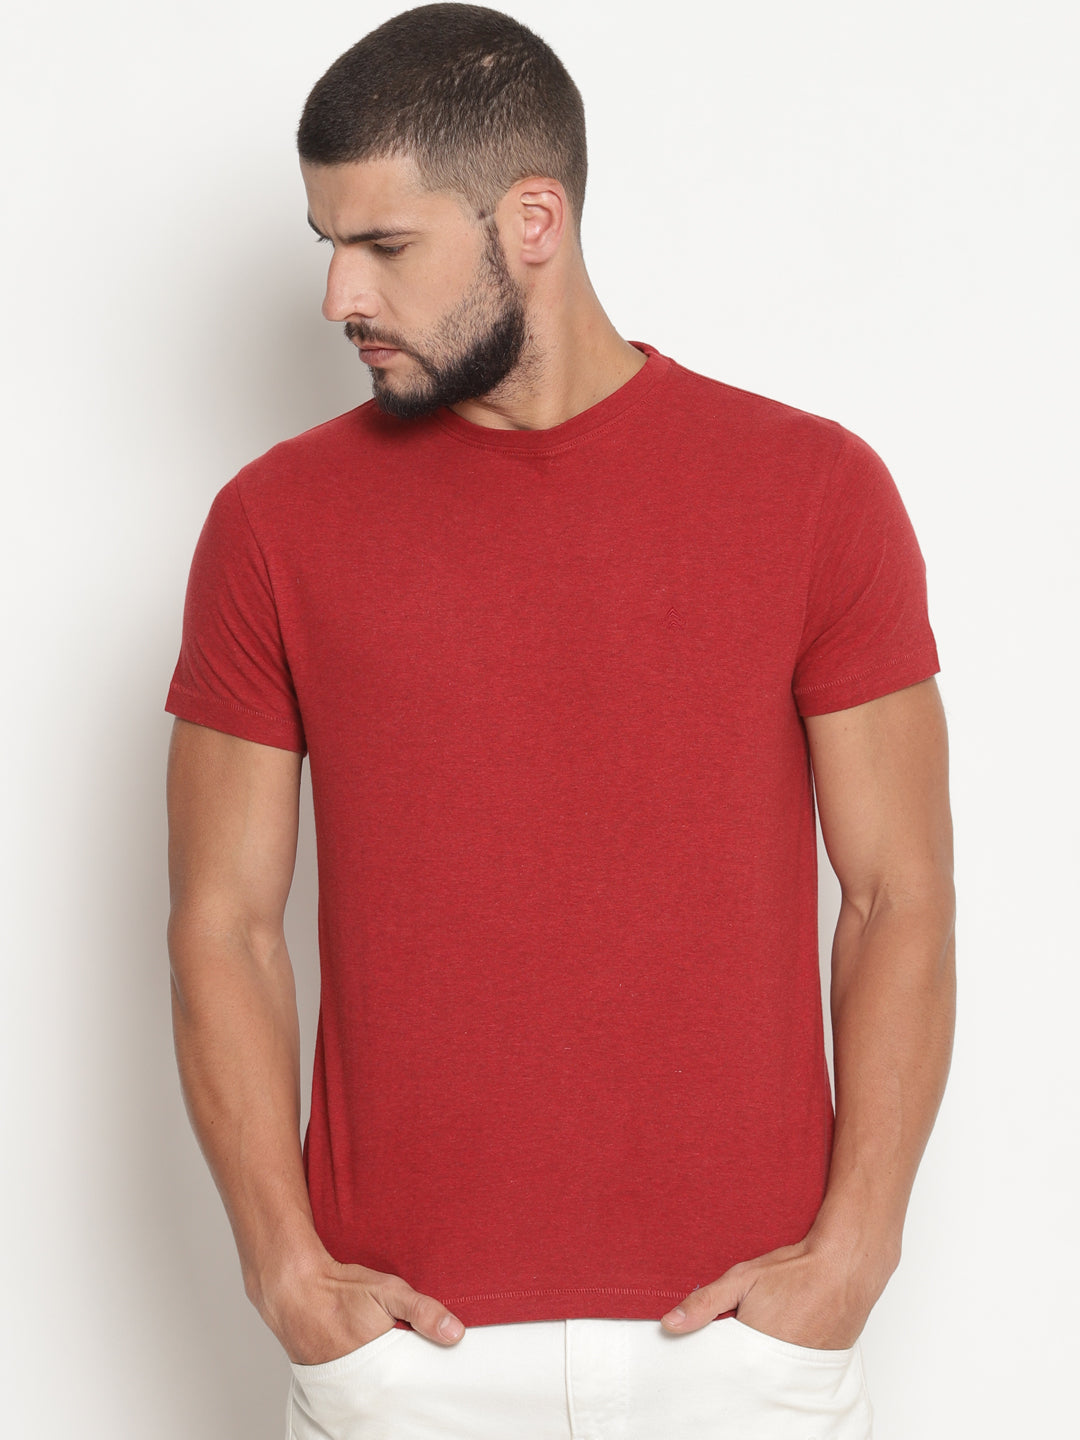 Men's Red Melange Crew Neck T-Shirt